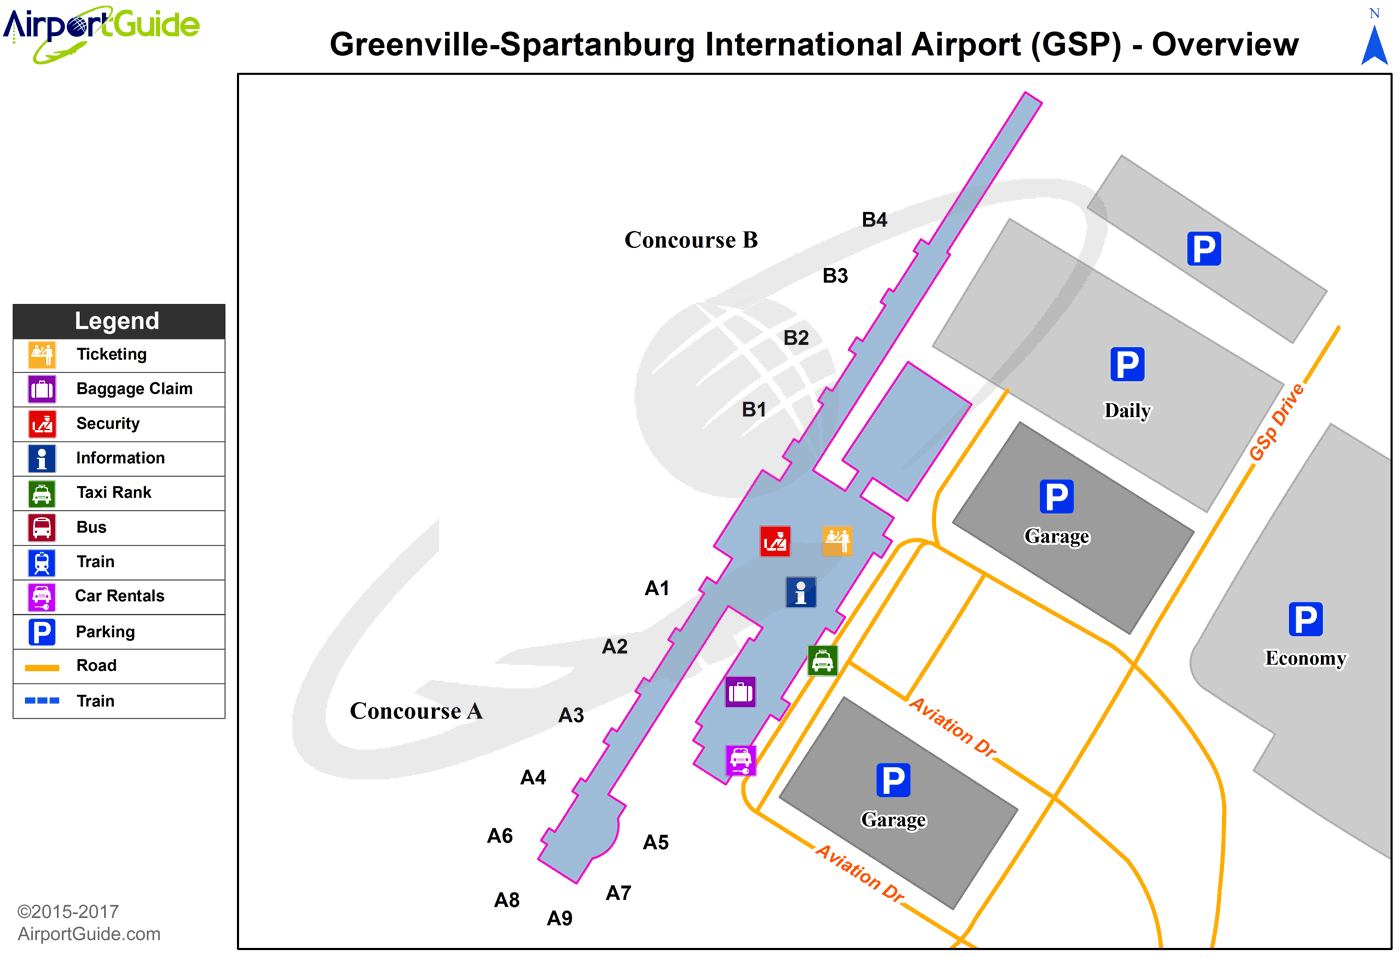 greer  greenville spartanburg international (gsp) airport terminal map overview. greer  greenville spartanburg international (gsp) airport